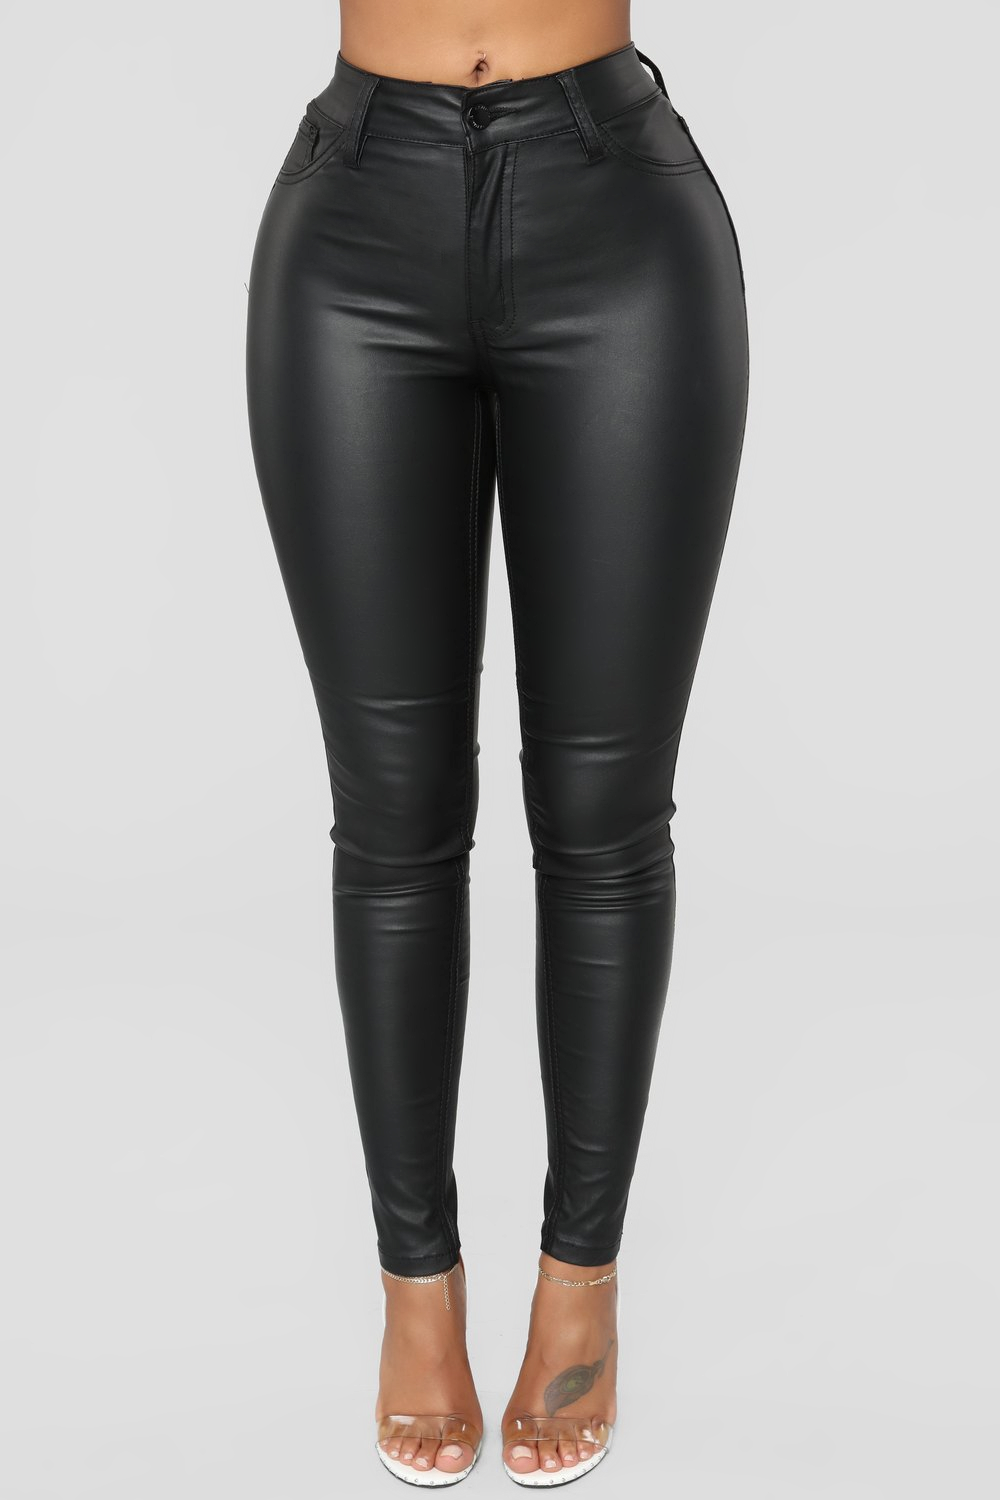 a590c72c3ddcc Candy Coated Skinny Jeans - Black